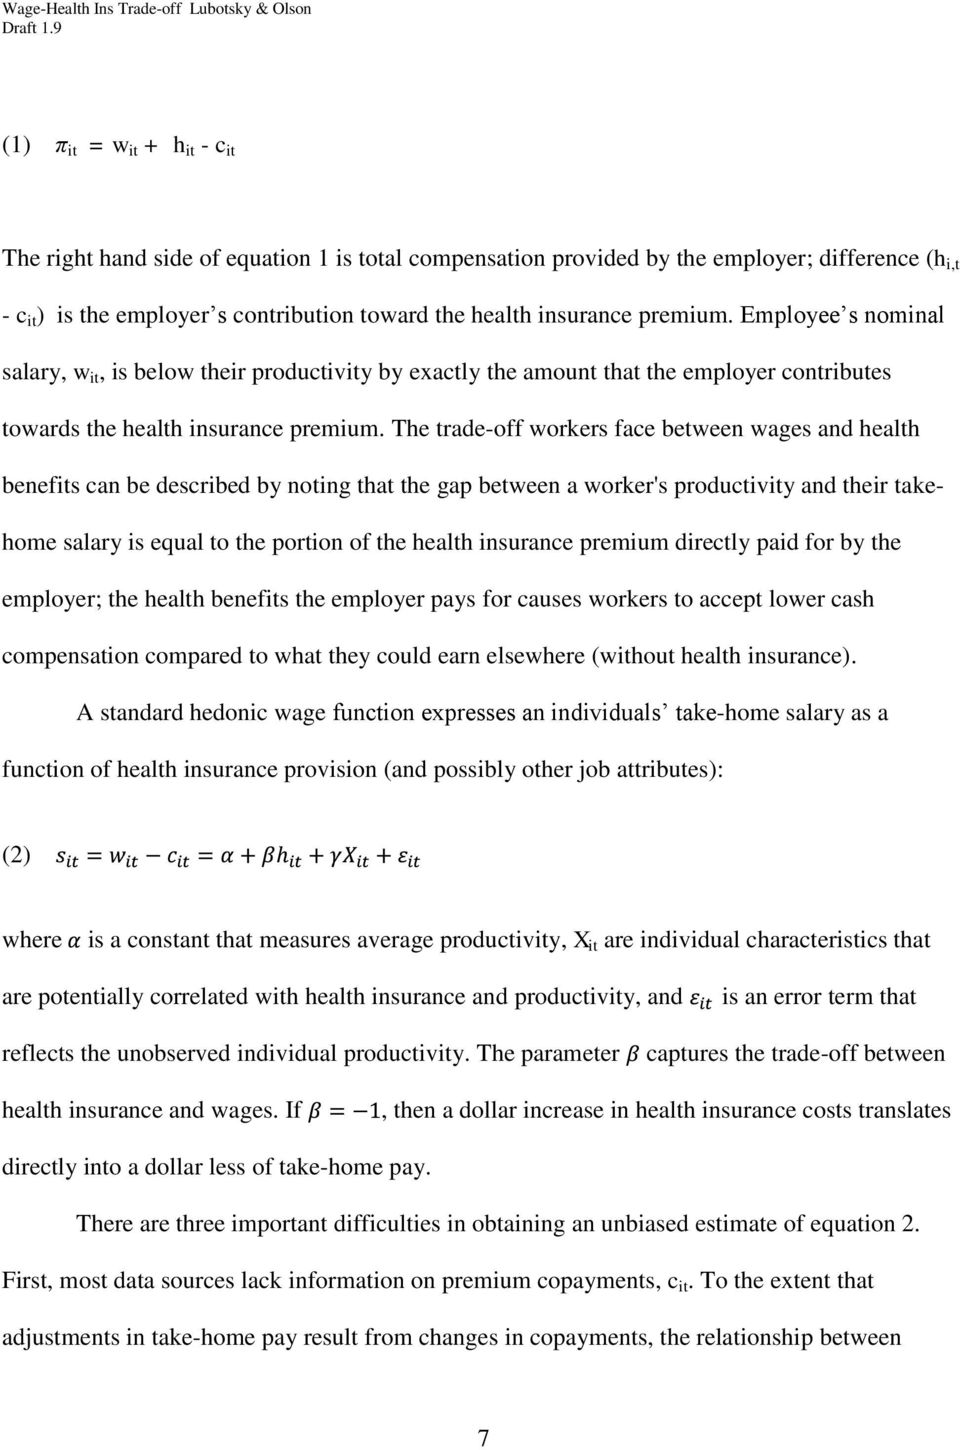 The trade-off workers face between wages and health benefits can be described by noting that the gap between a worker's productivity and their takehome salary is equal to the portion of the health